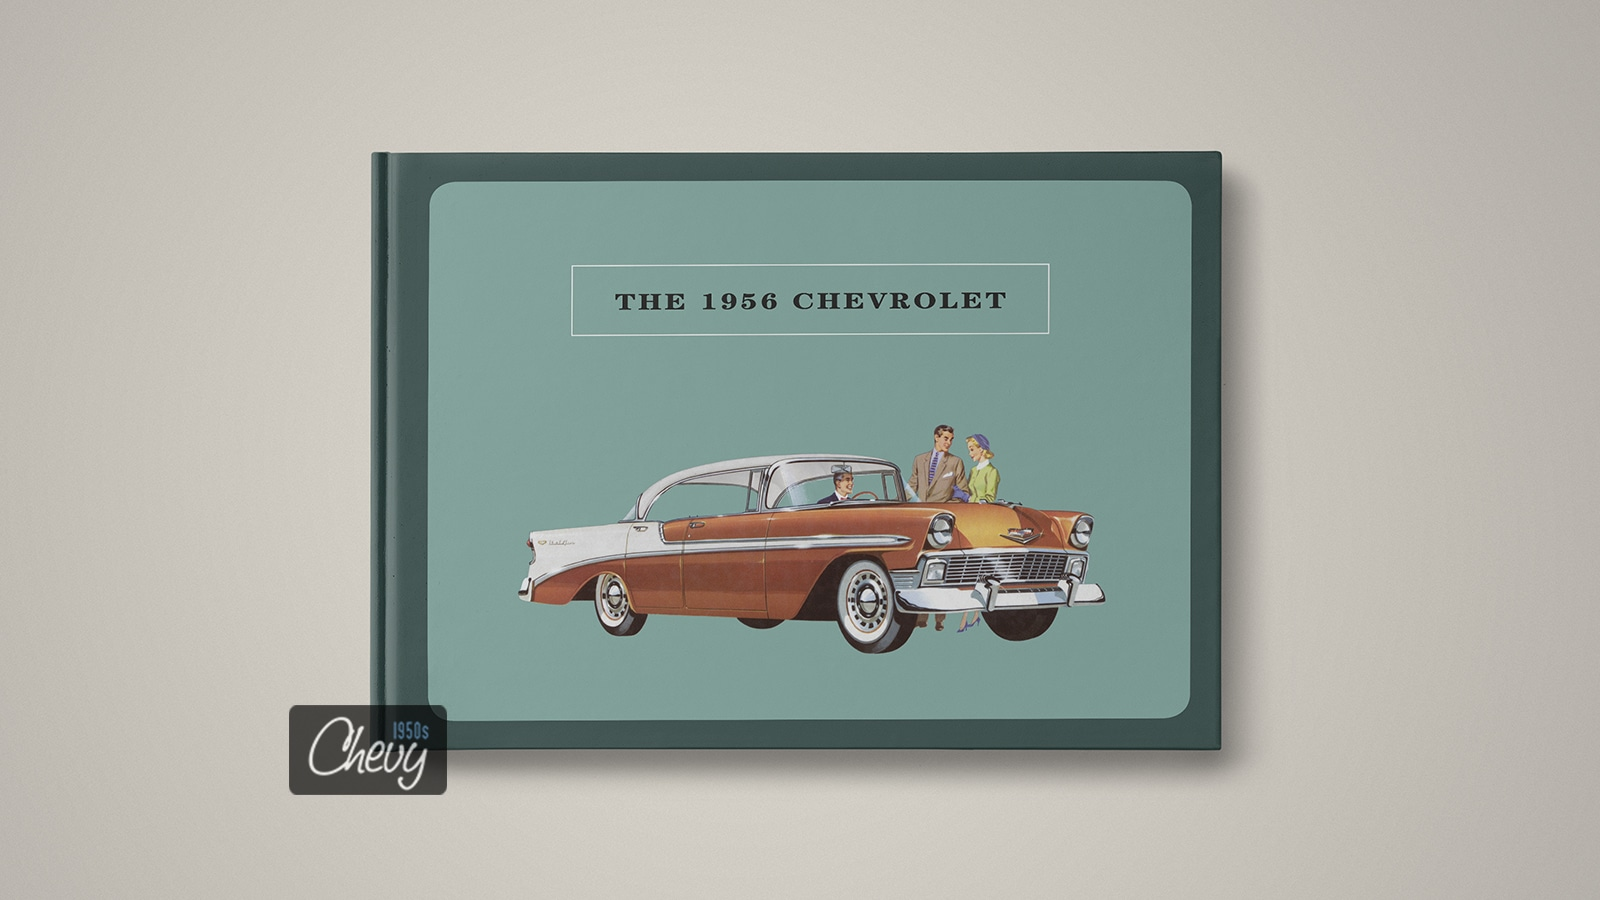 1956 Chevrolet Showroom Album